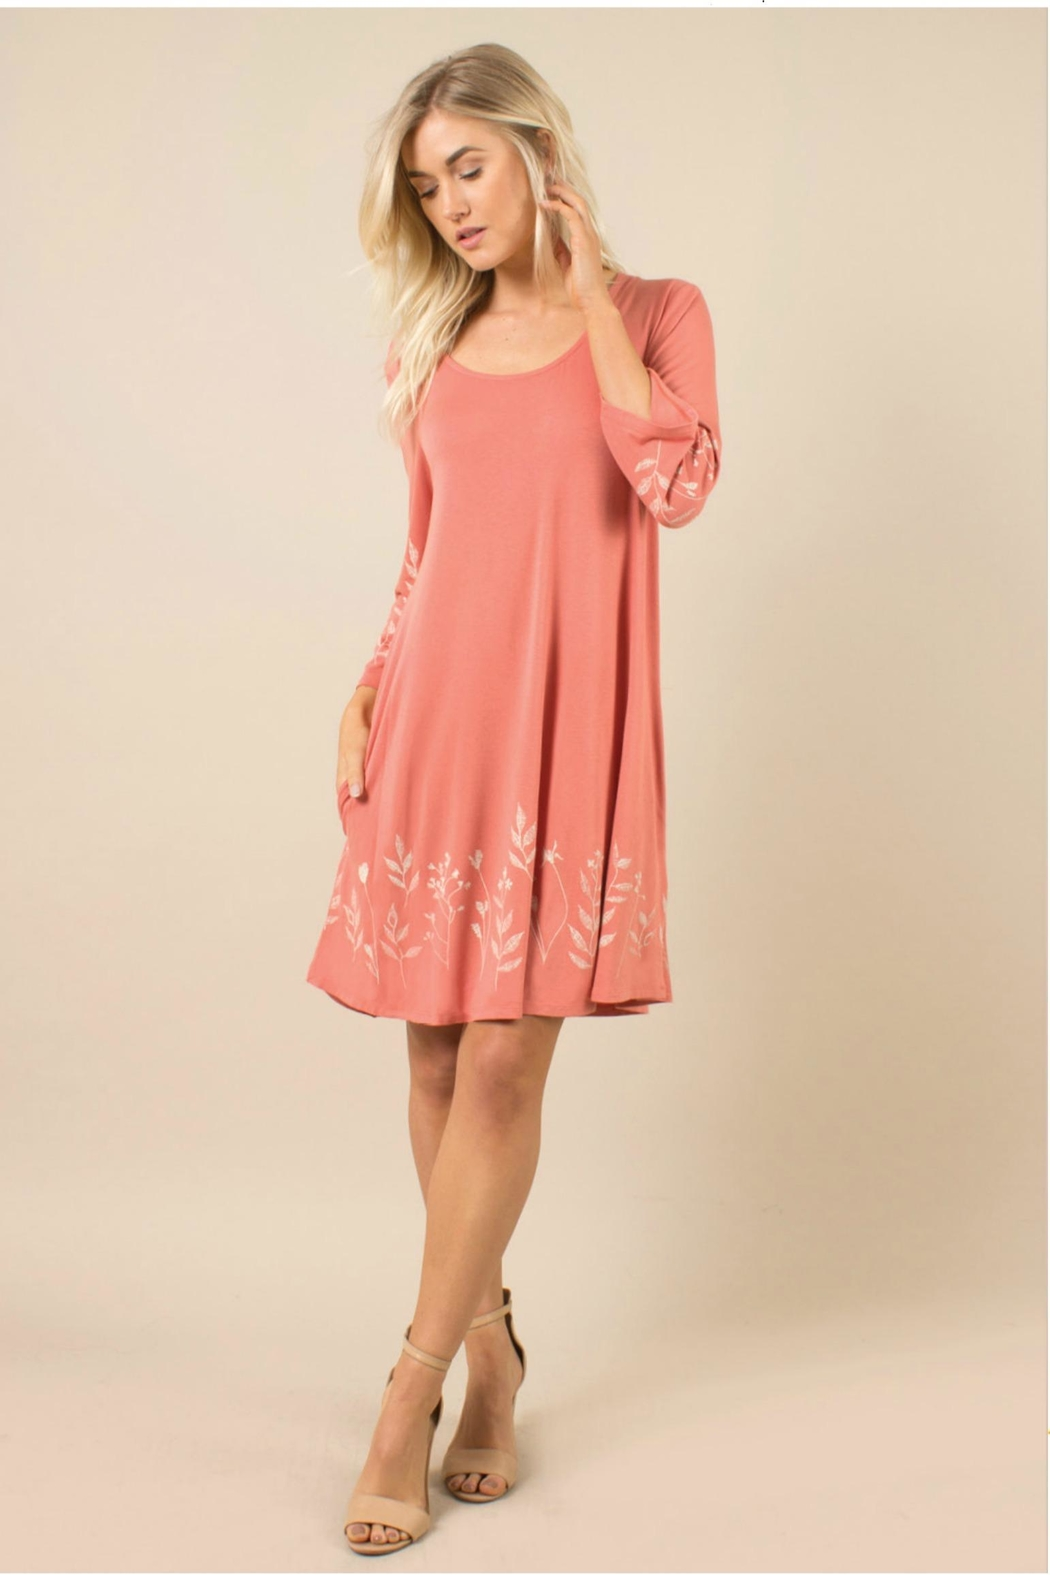 Simply Noelle Vine-And-Dine Dress - Main Image